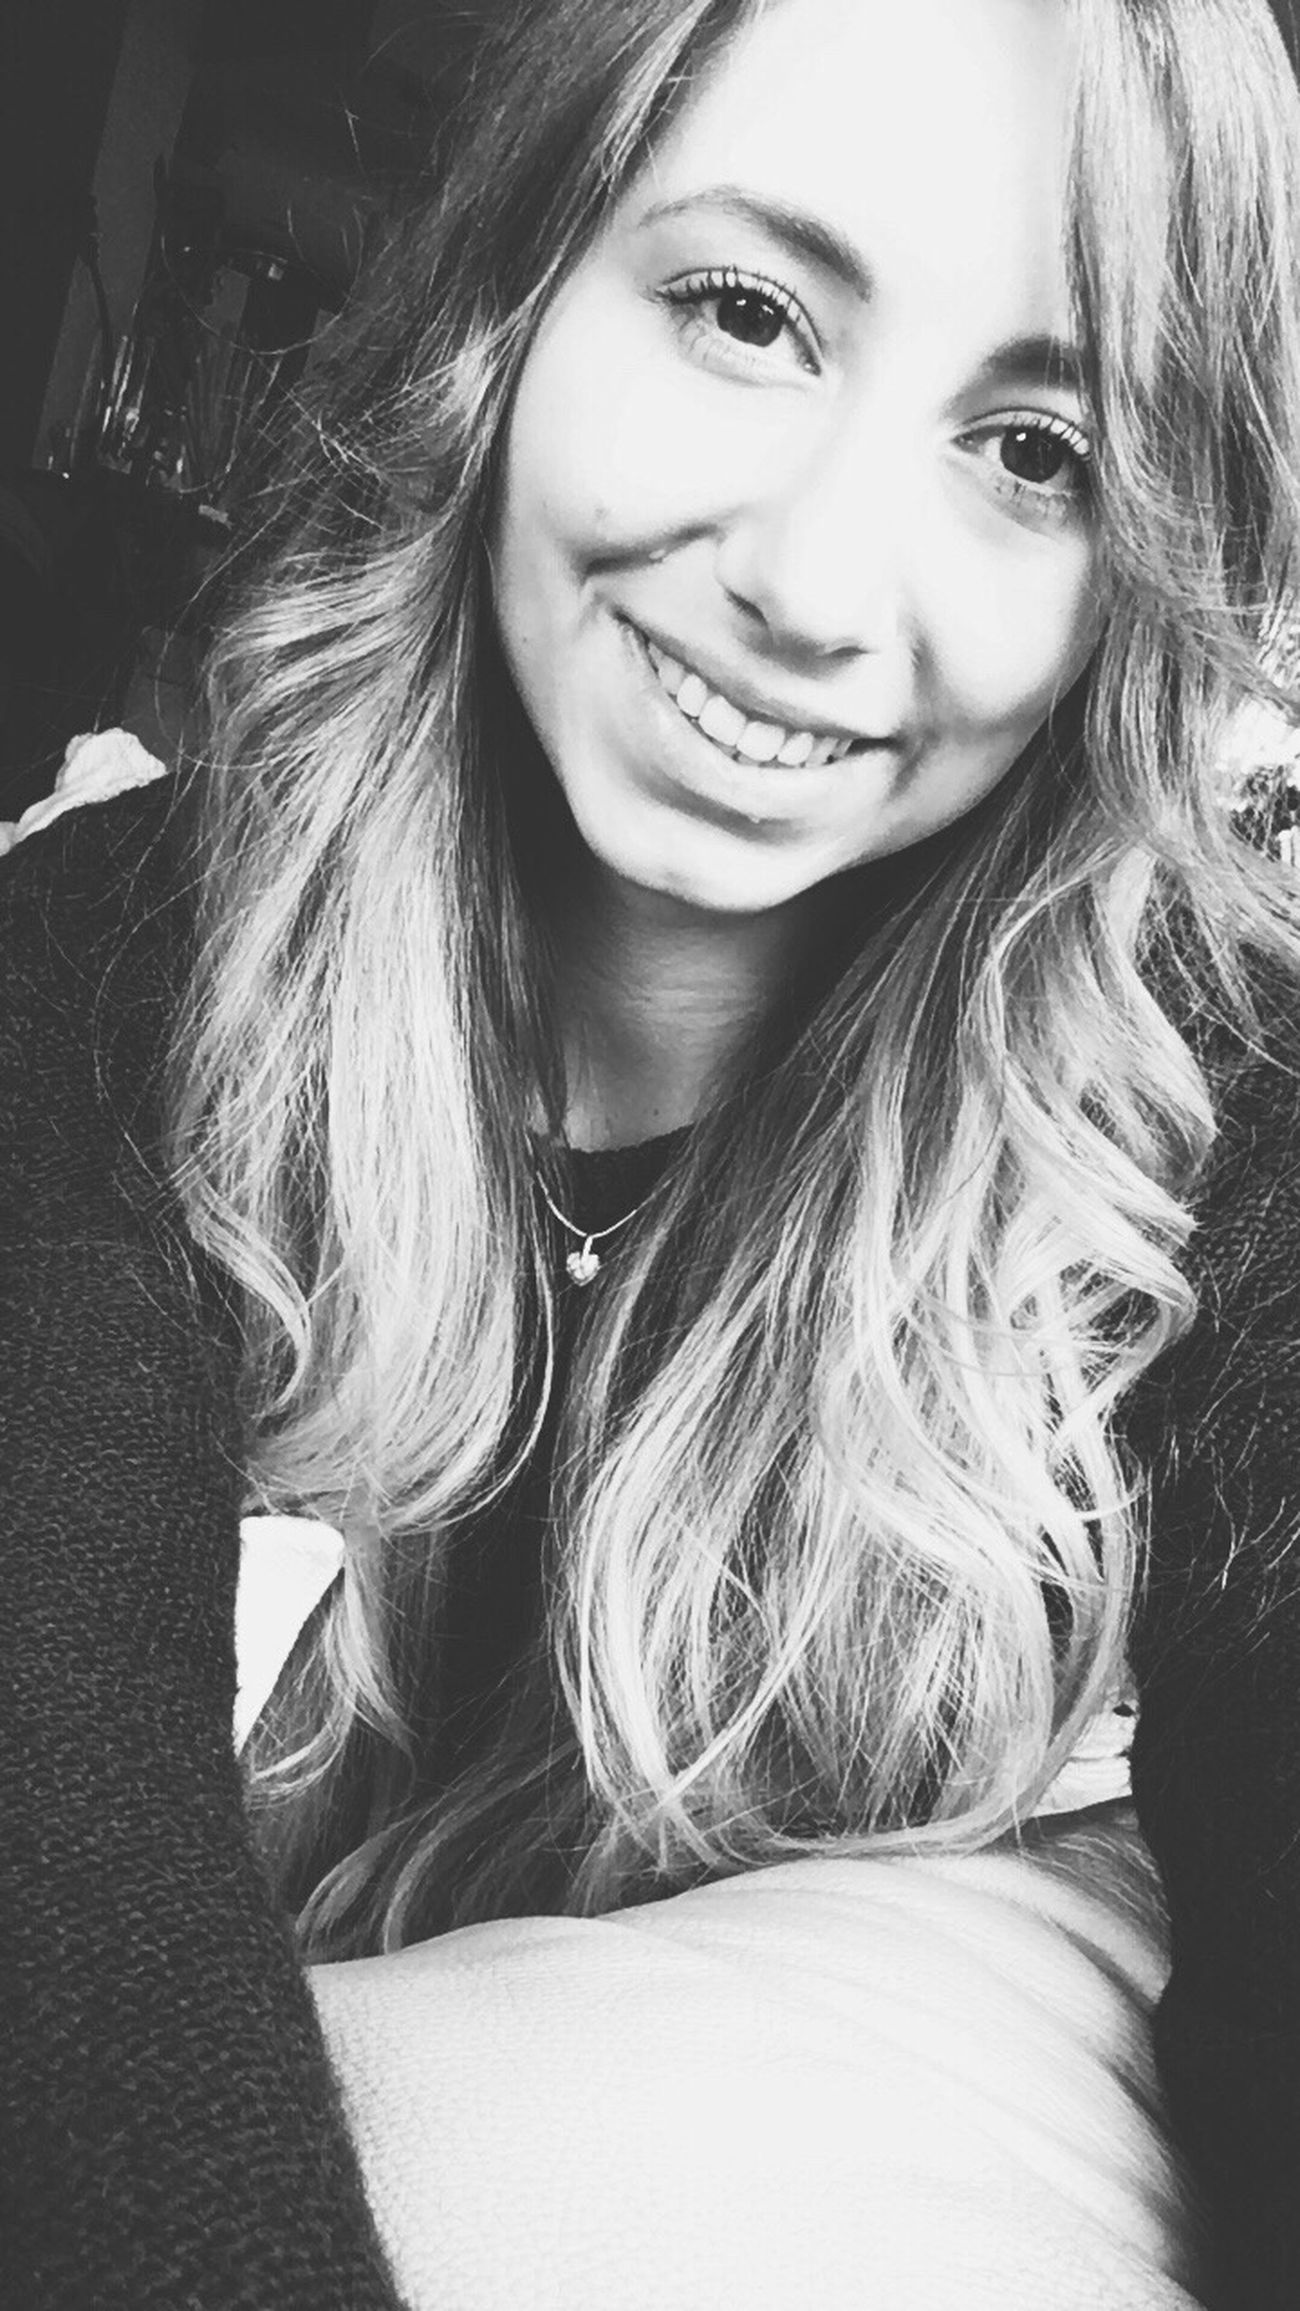 Self Portrait Selfie ✌ Selfie Girl Smile Blackandwhite Black And White Hanging Out Bored Selfportrait